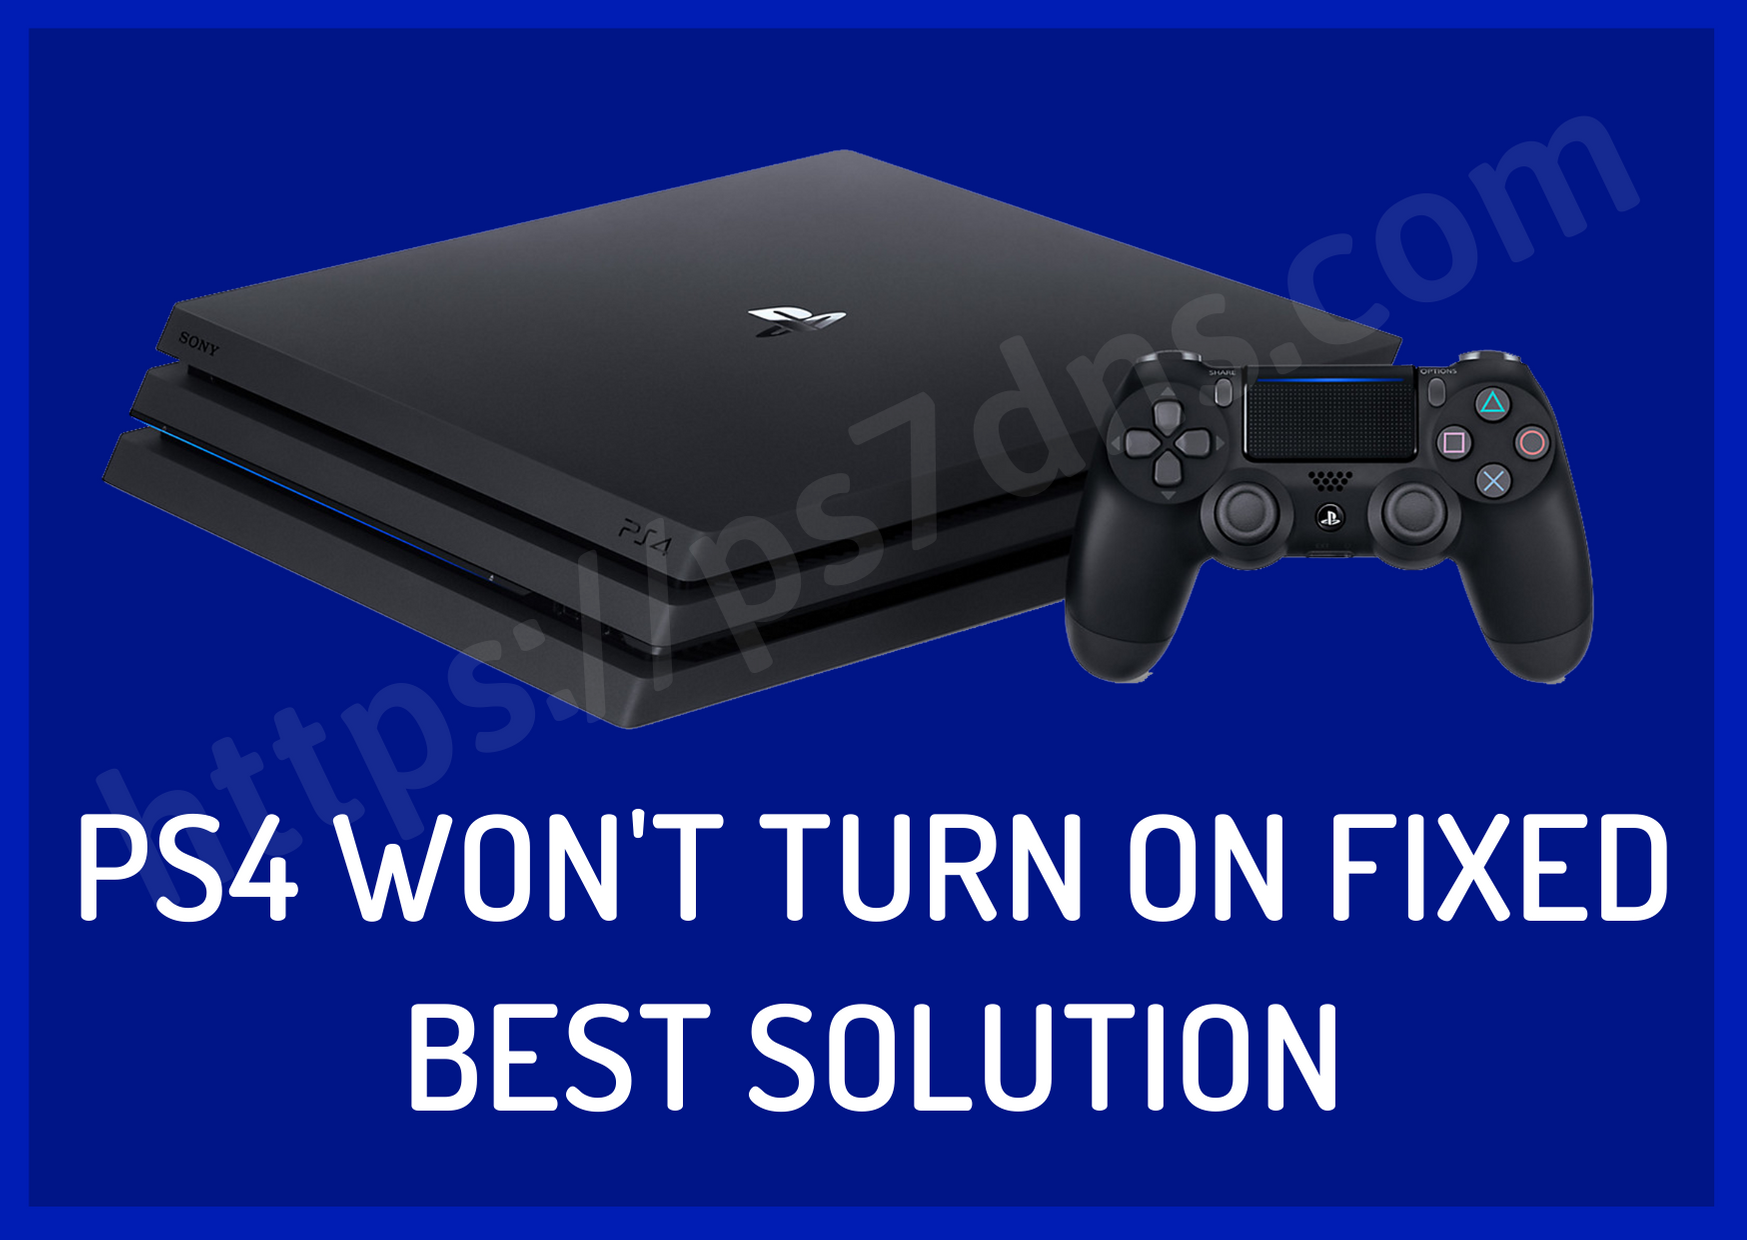 PS4 Wont Turn On